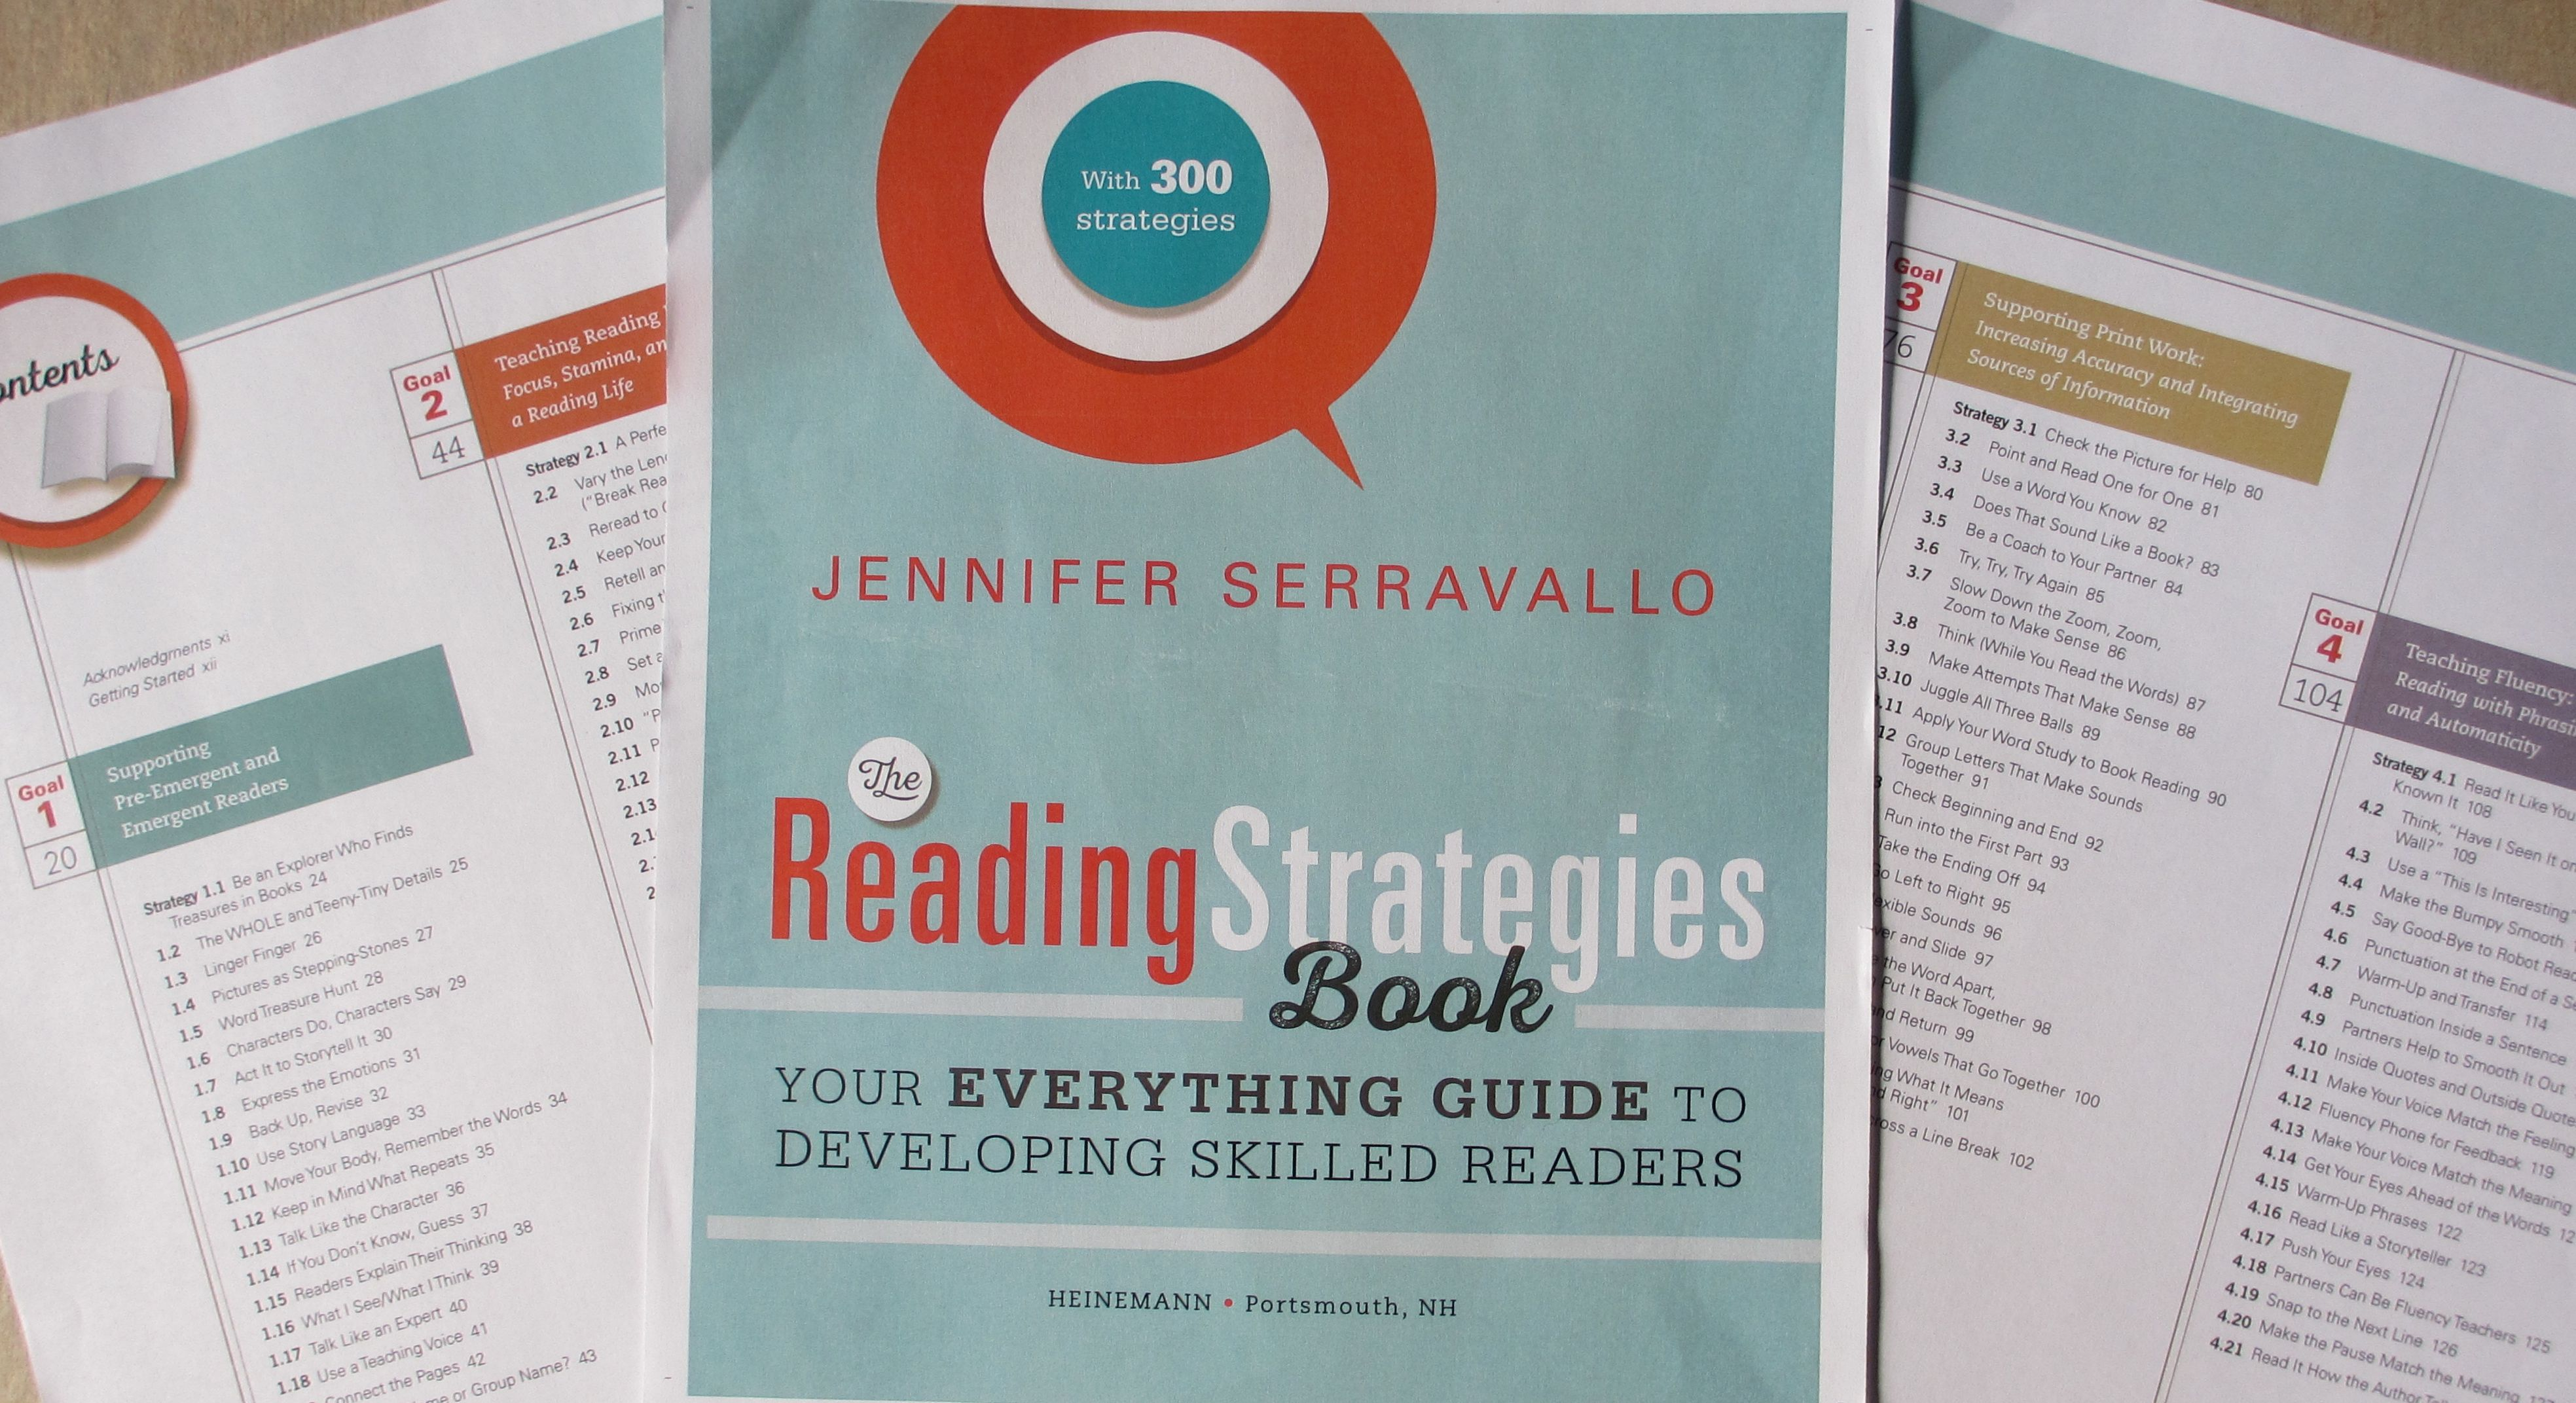 There Is A Scene In The Movie The Matrix Where Neo Played By Keanu Reeves Sees The Matri The Reading Strategies Book Reading Strategies Jennifer Serravallo Reading strategies goal 11